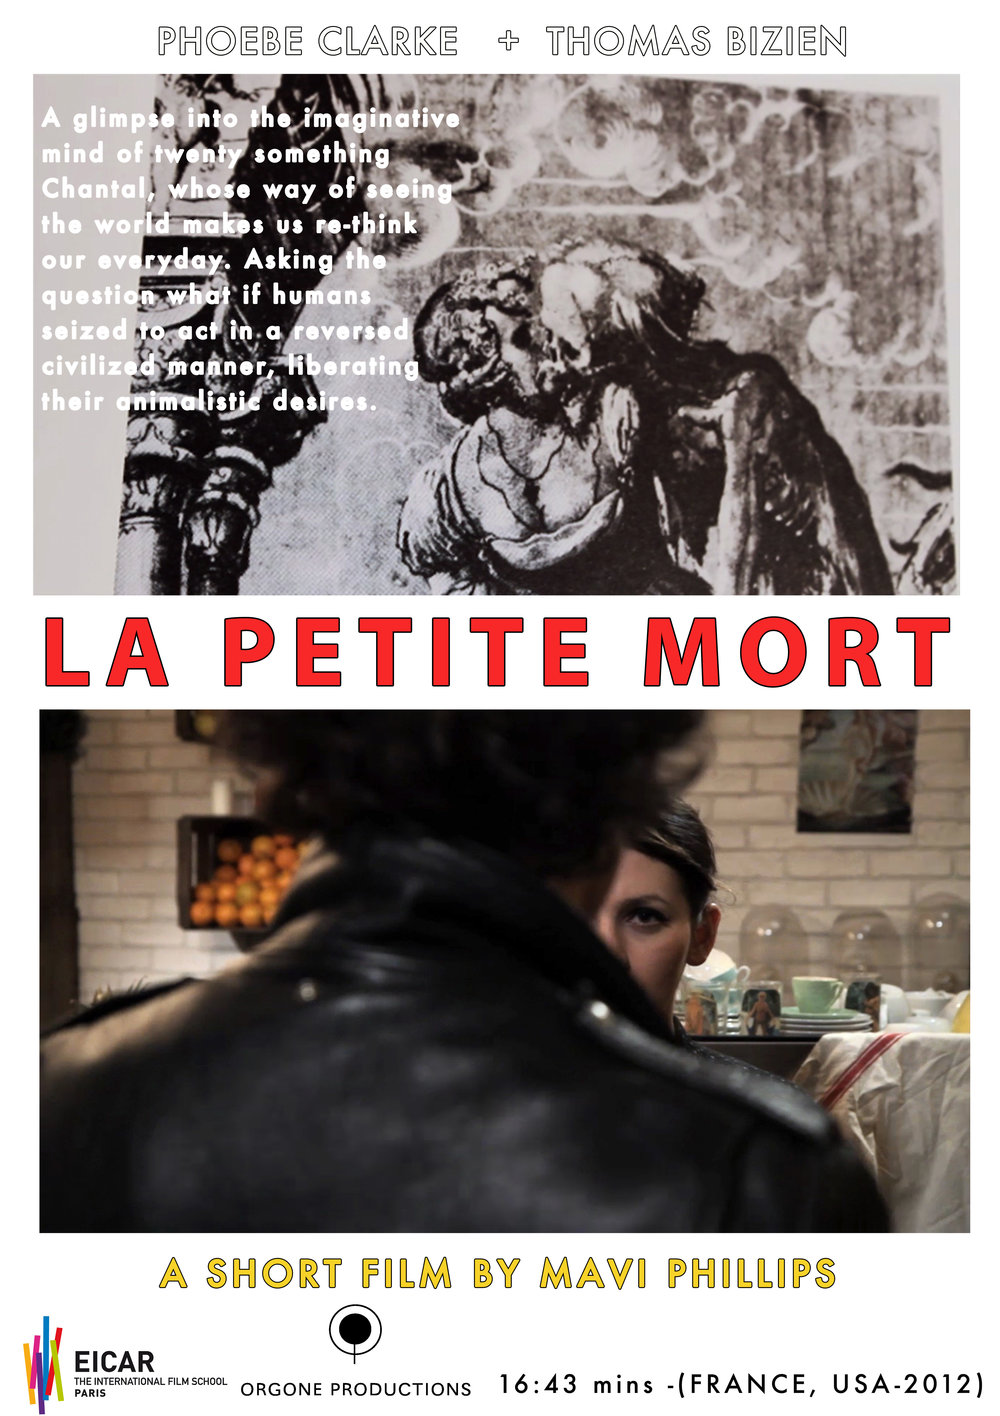 NARRATIVE FILM: A short film shot in Paris, France, 'La Petite Mort' is a glimpse into the imagiative mind of twentysomething woman, where our animal nature reins.